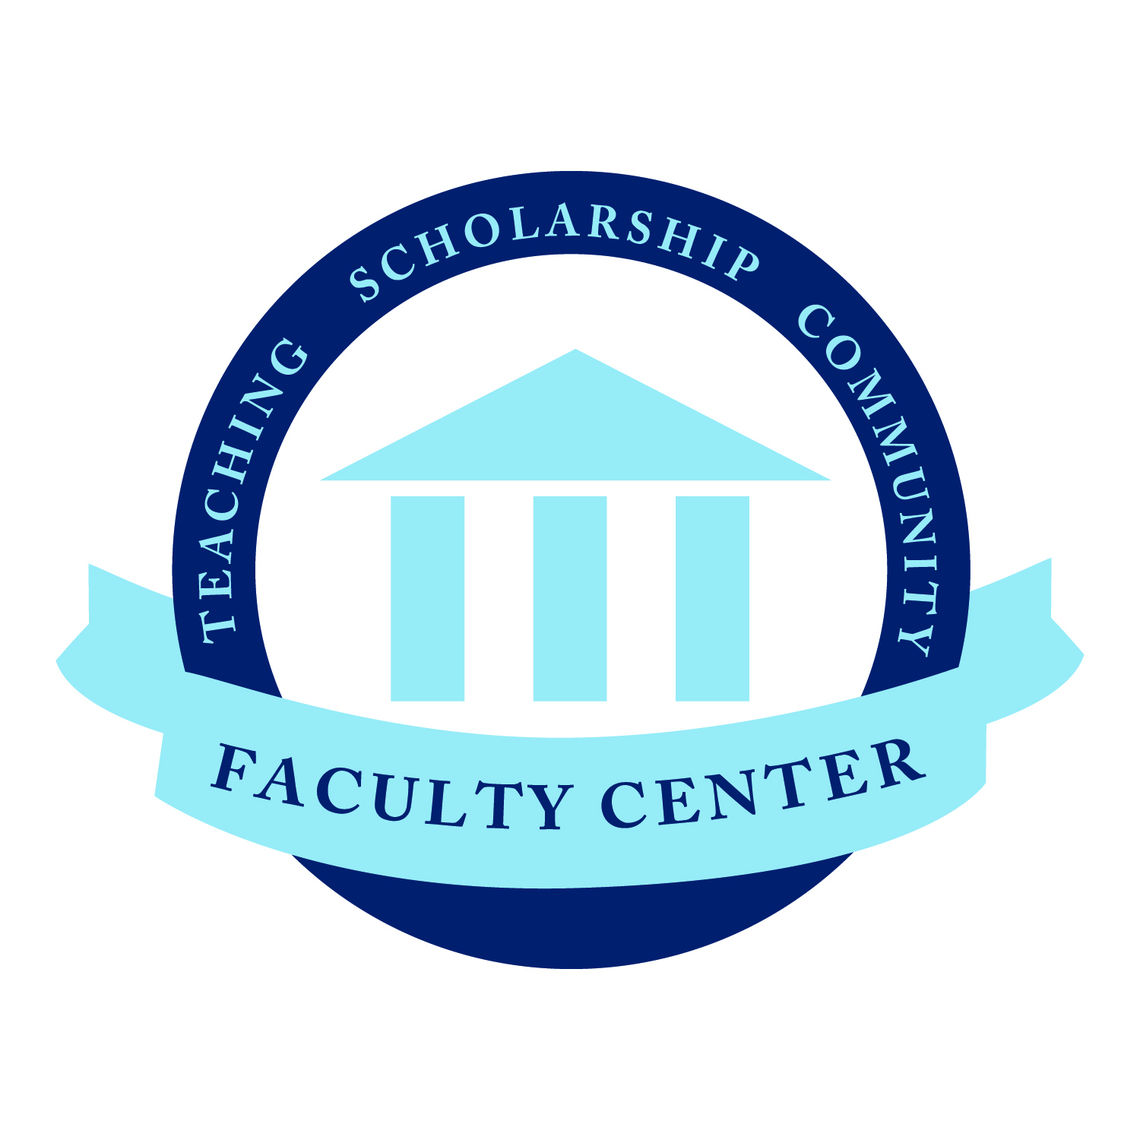 2013 faculty center logo final copy